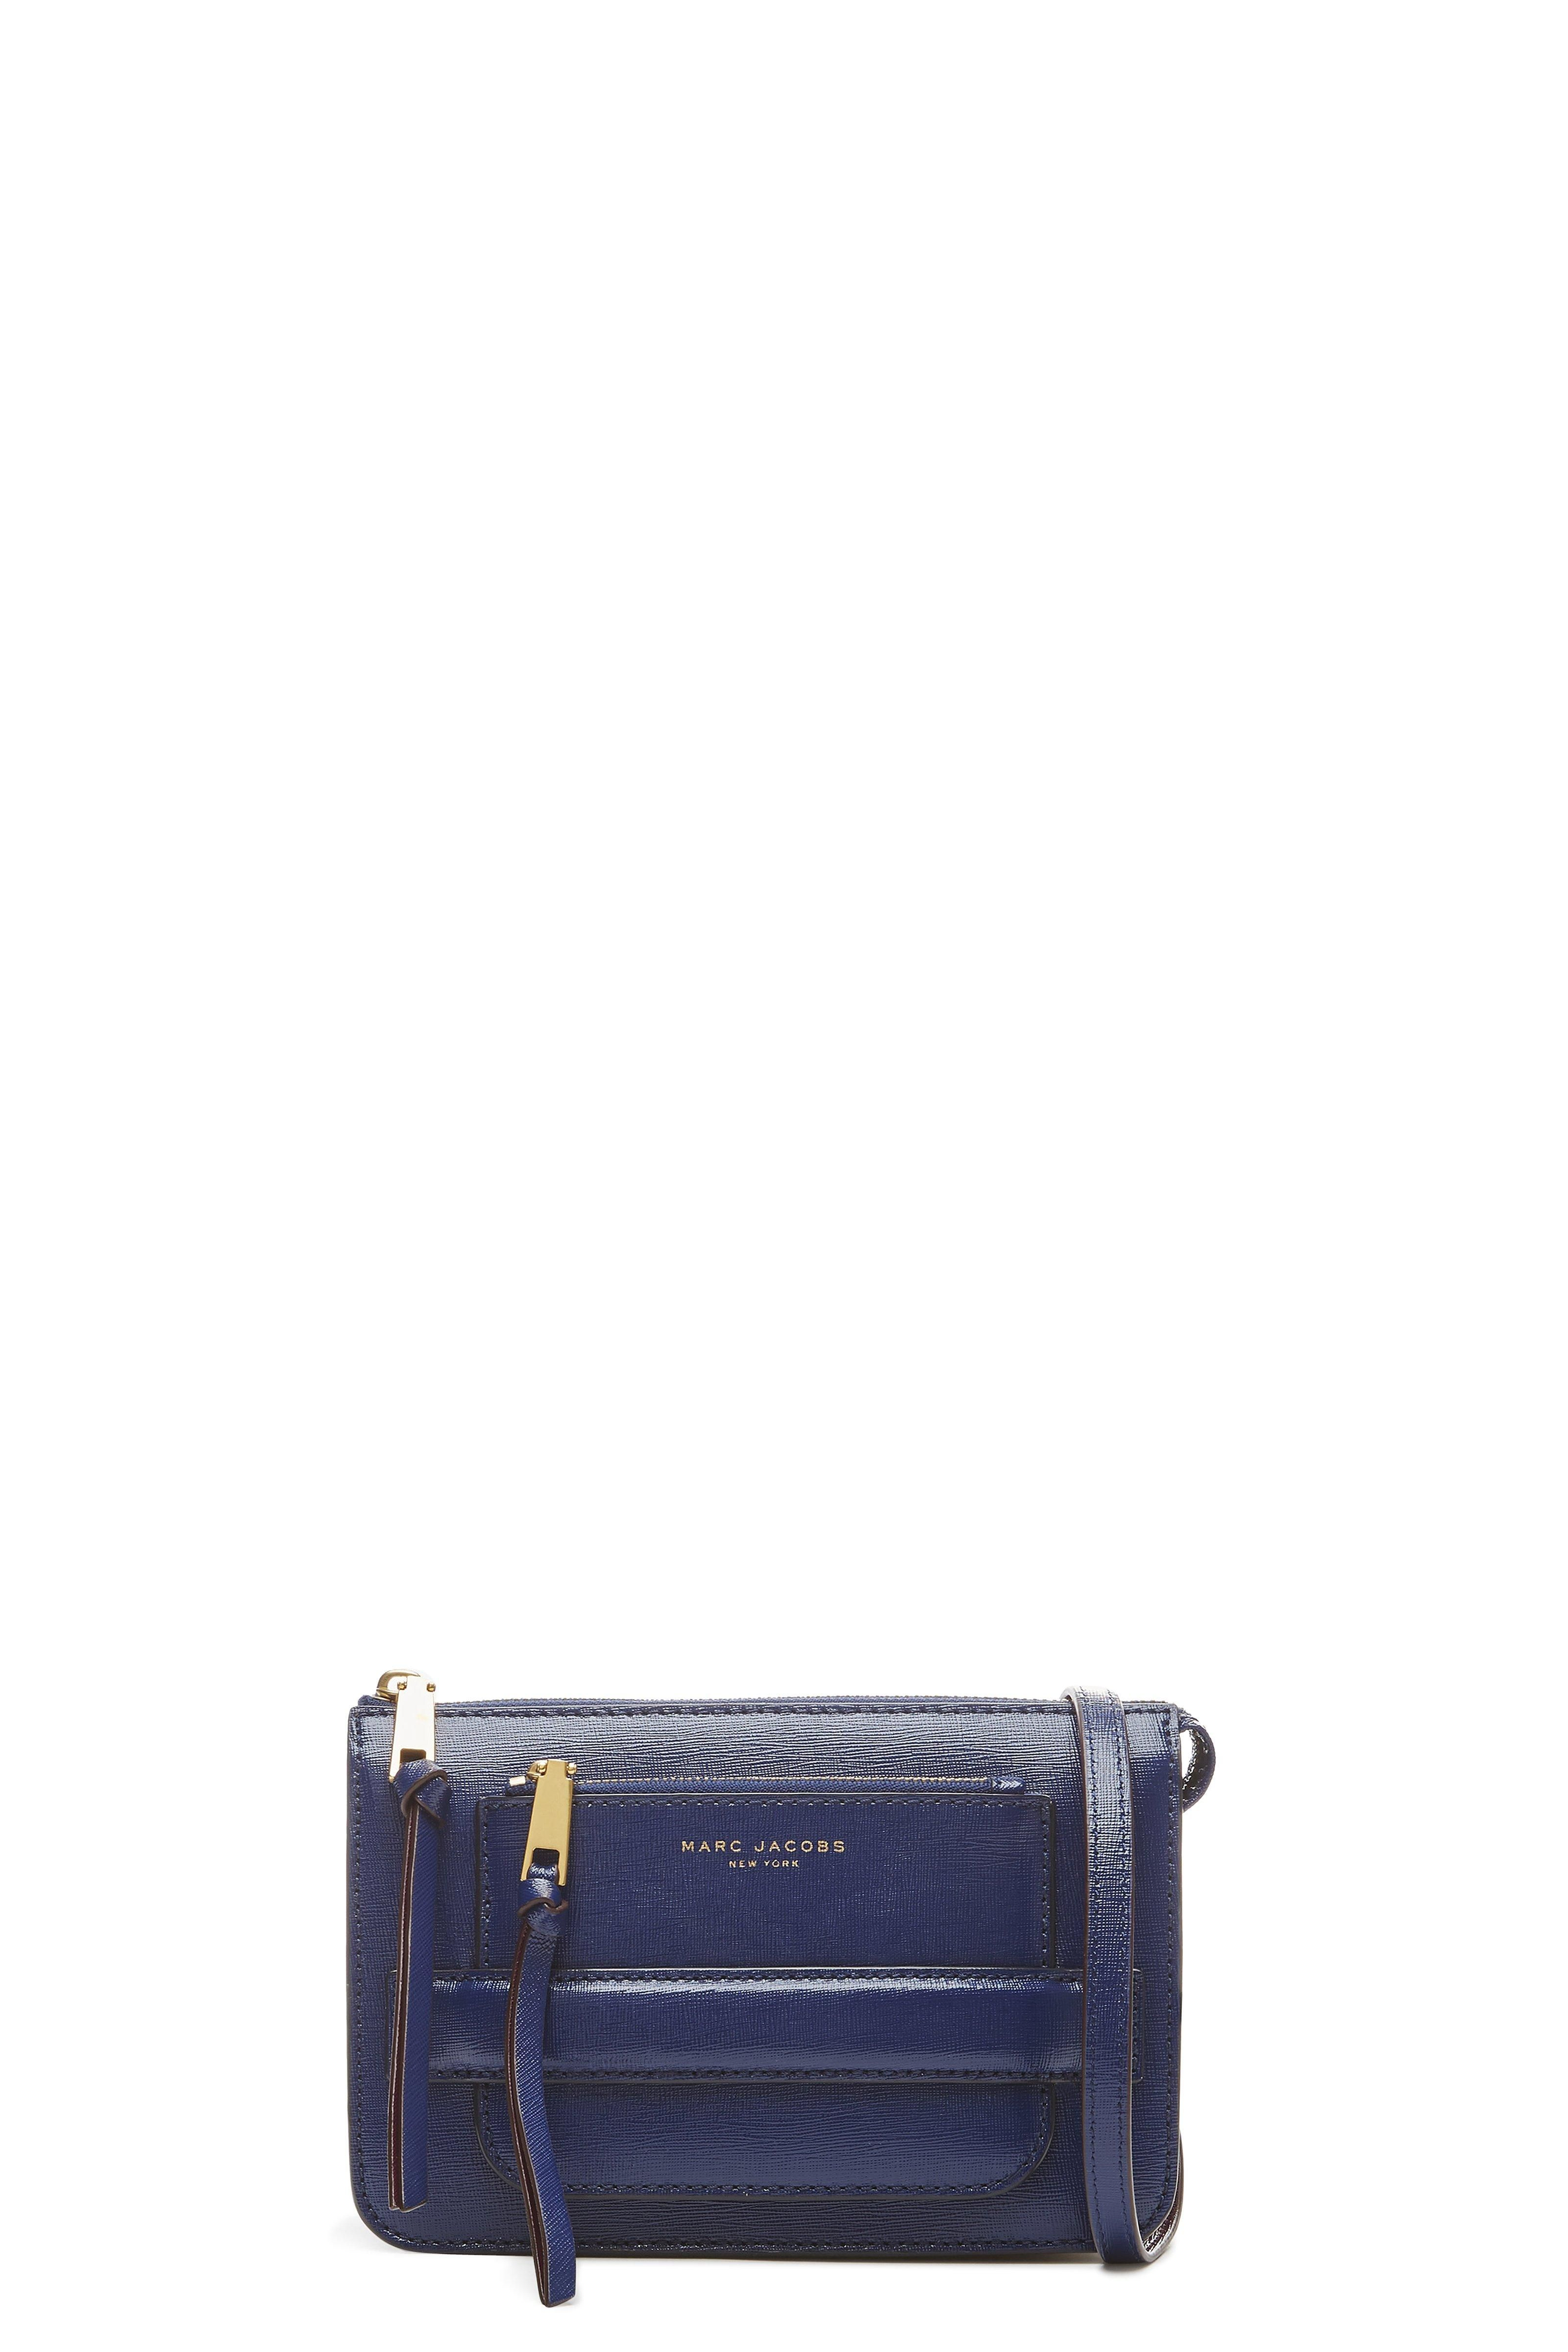 266d5127b5cf MARC JACOBS Madison Saffiano Leather Crossbody Bag.  marcjacobs  bags   shoulder bags  leather  crossbody